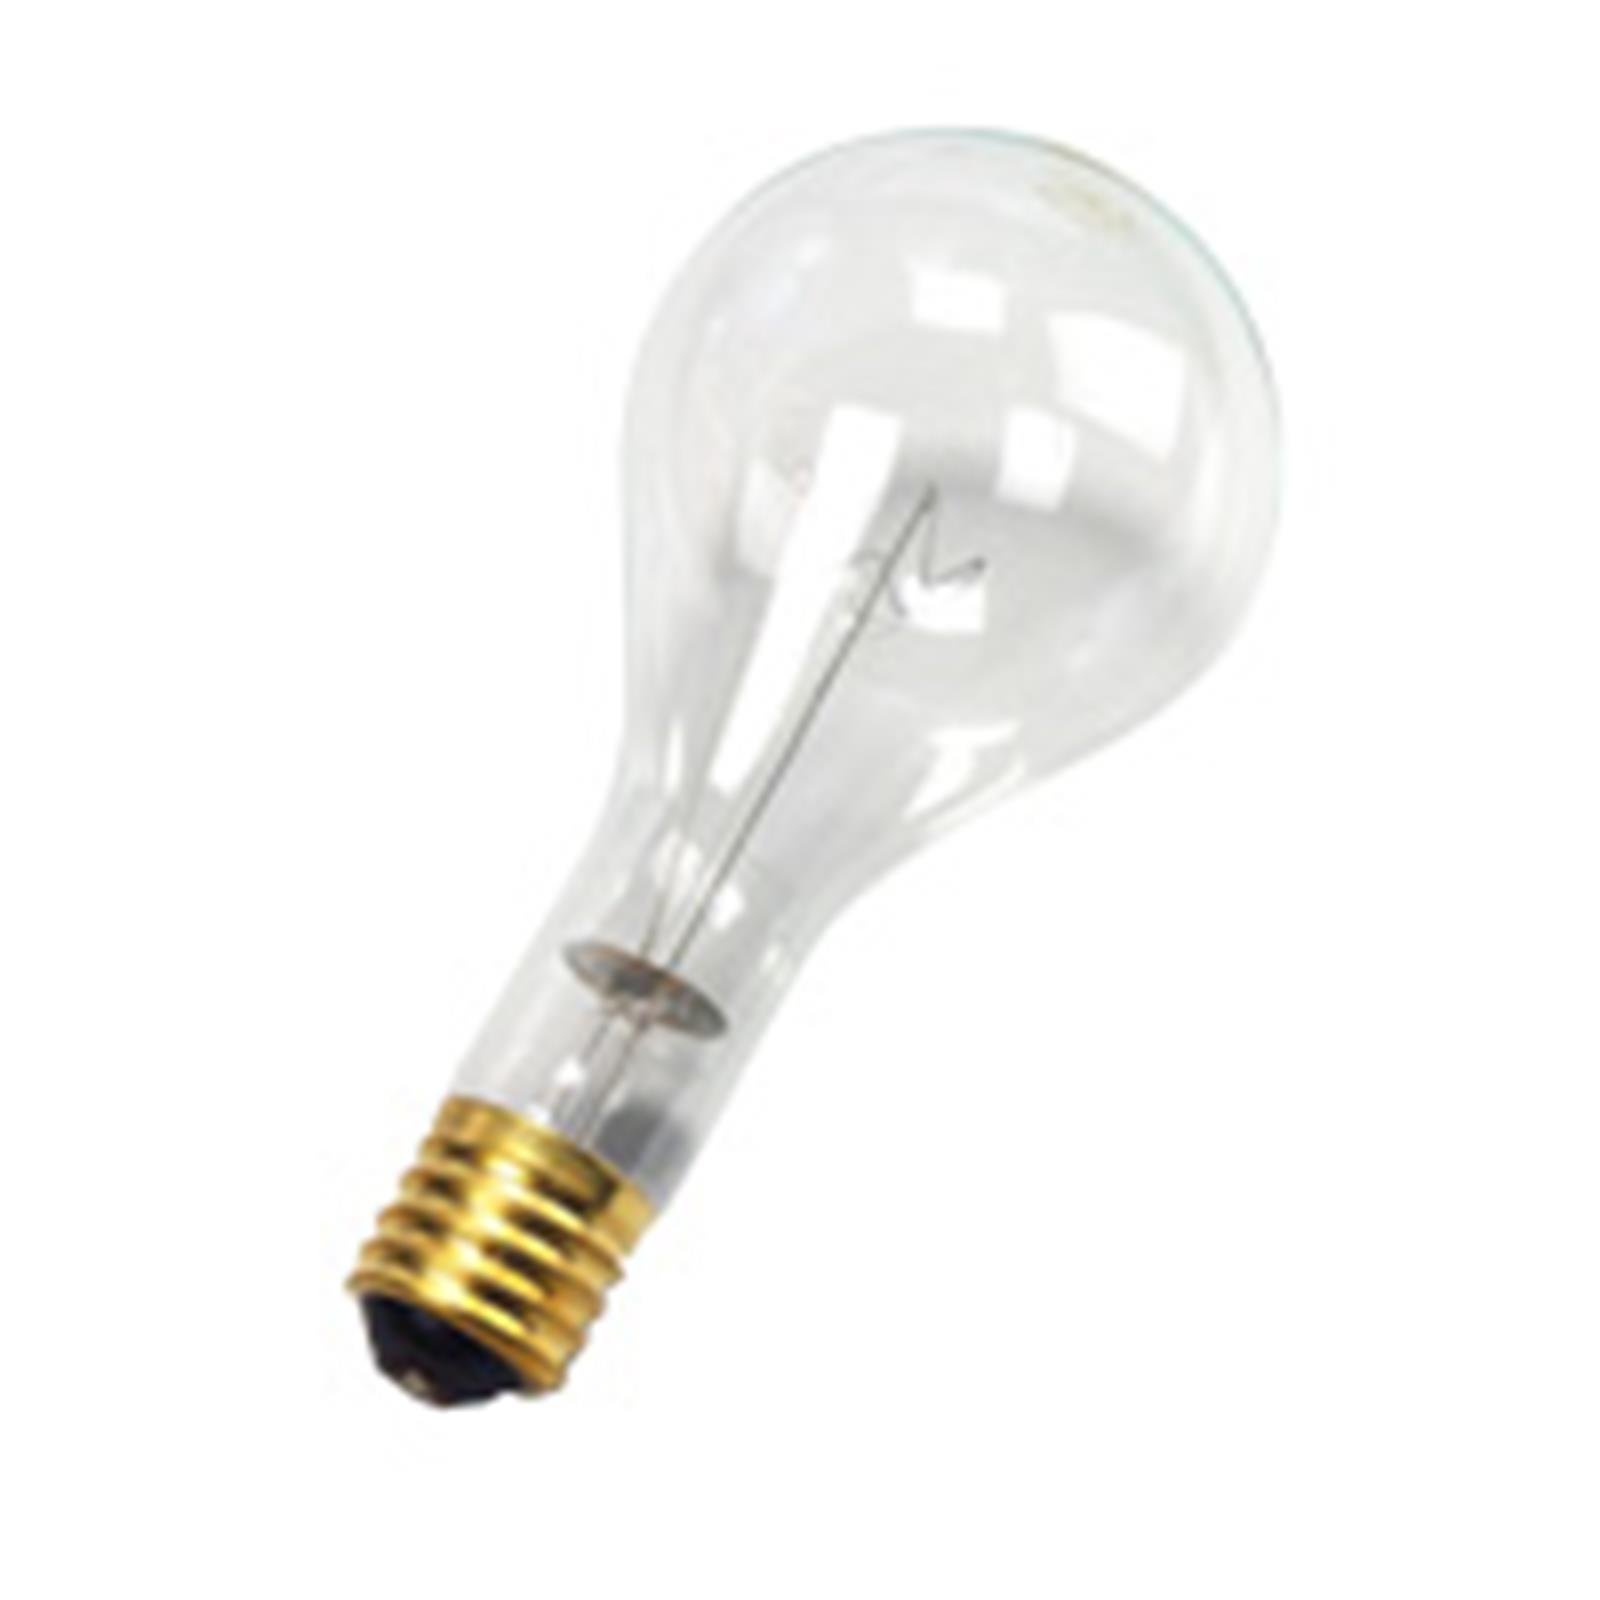 24 Qty. Halco 300W PS35 CL MOG 130V 5M Prism PS35CL300/P5 300w 130v Incandescent Clear Prism Long Life Plus Lamp Bulb by Halco